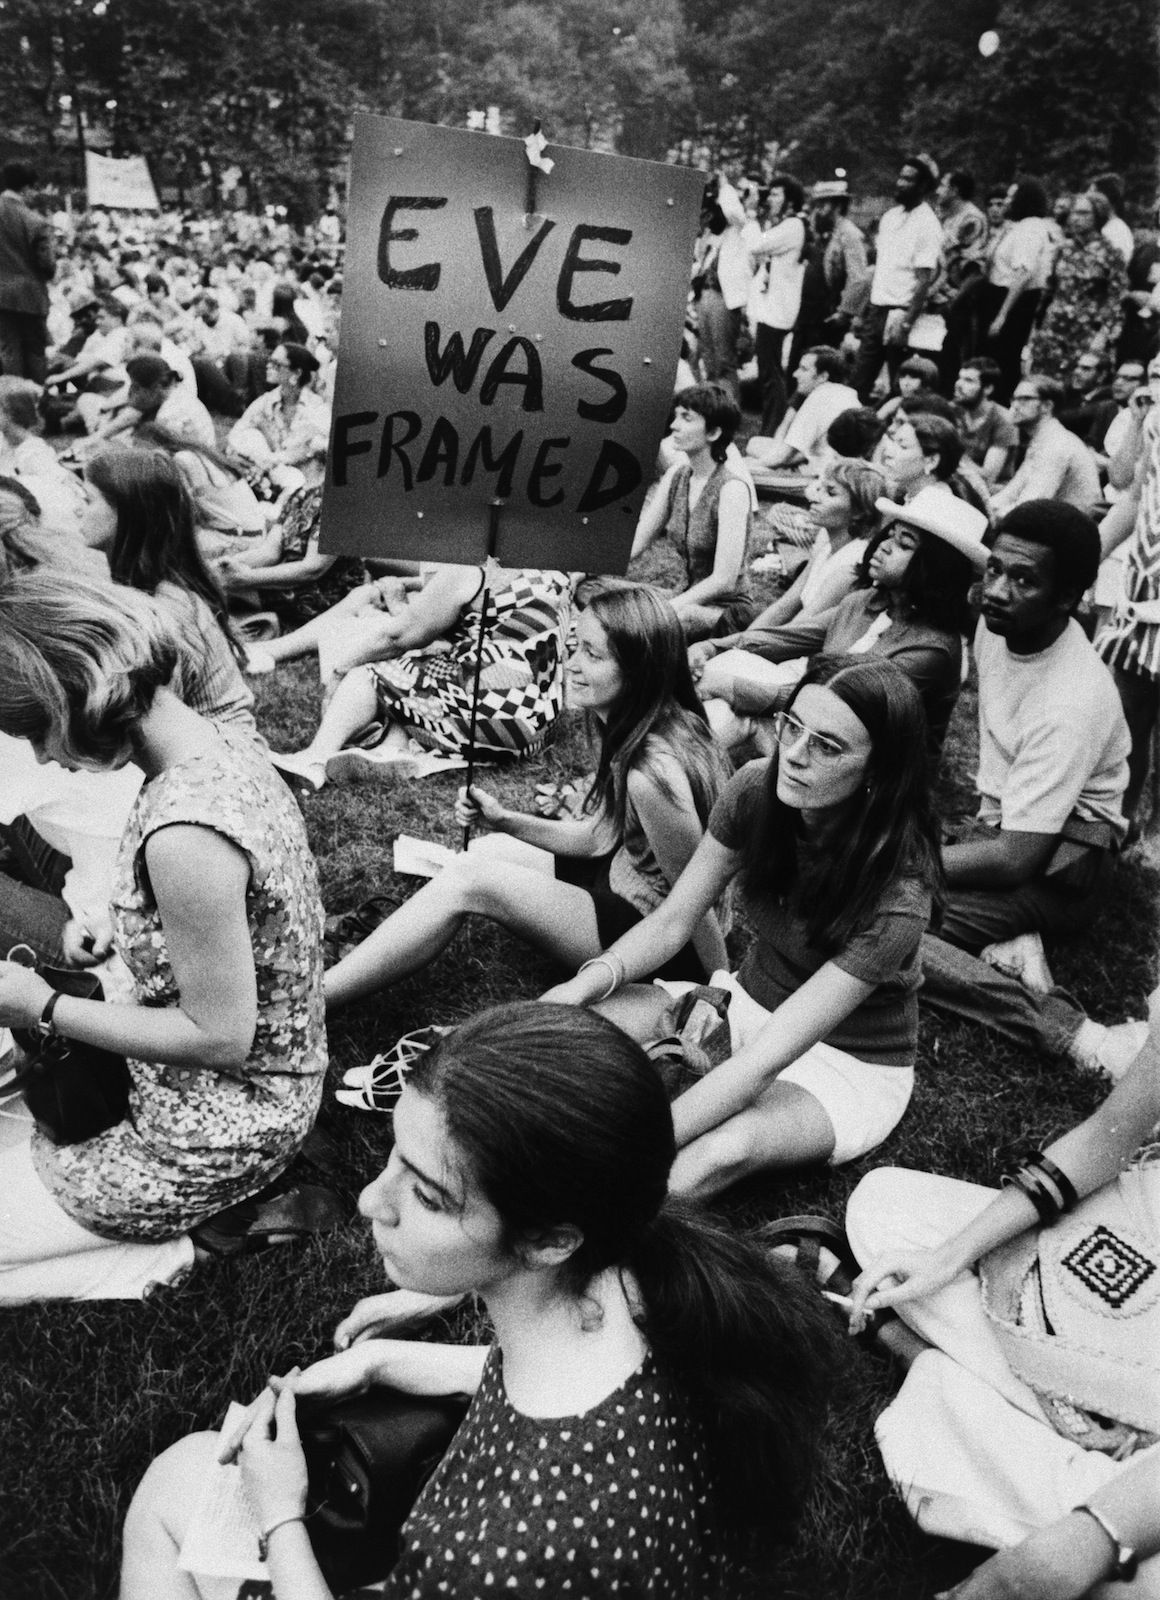 feminism in the 1970s On aug 26, 1970, a full 50 years after the passage of the 19th amendment granted women the right to vote, 50,000 feminists paraded down new york city's fifth avenue with linked arms, blocking.